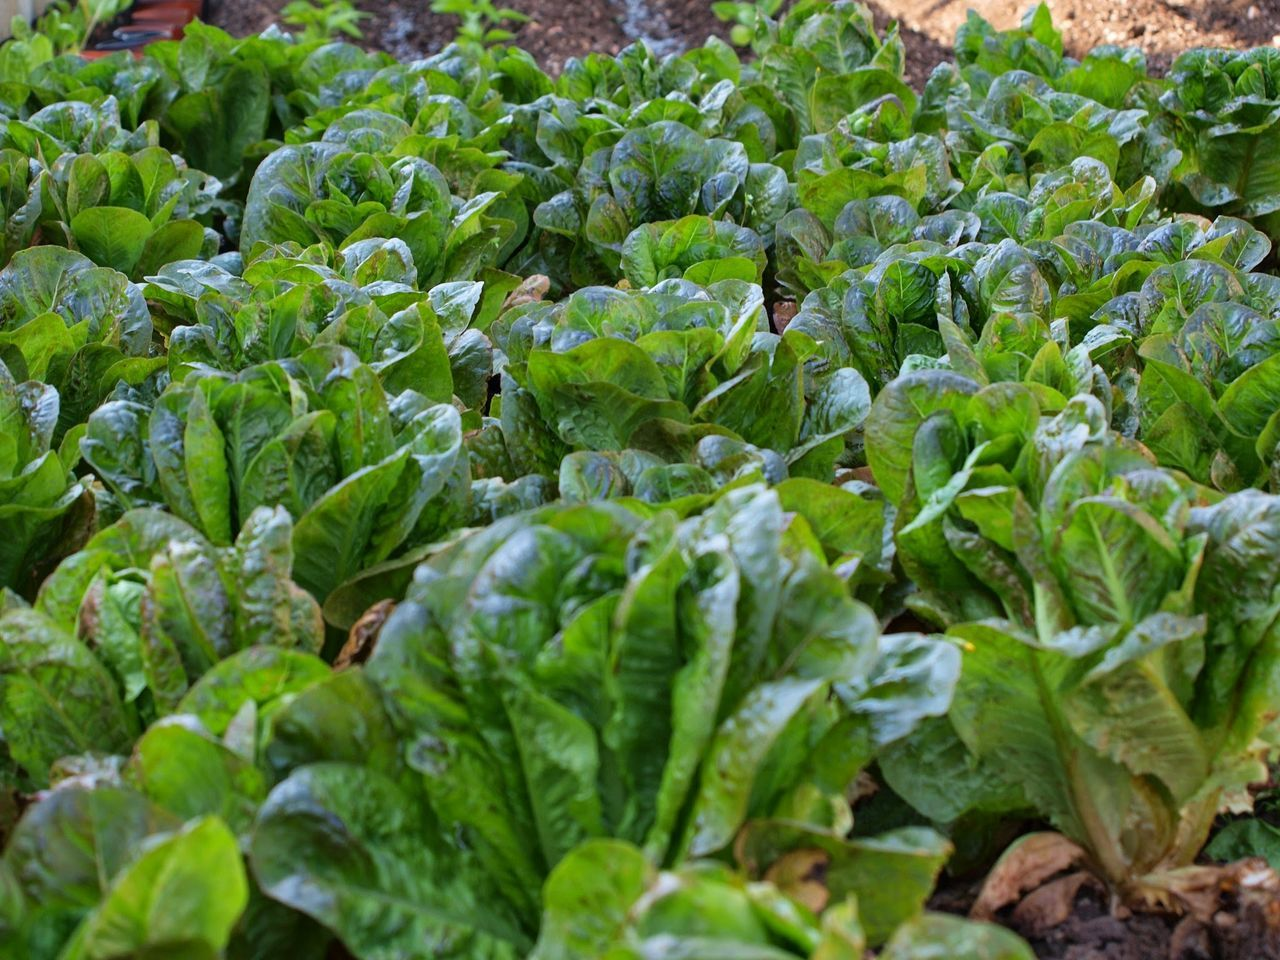 Vegetable Growth Green Color Freshness Agriculture Food And Drink Healthy Eating Field Food Plant Abundance Nature Day Outdoors No People Raw Food Full Frame Close-up Leaf Beauty In Nature Lechuga